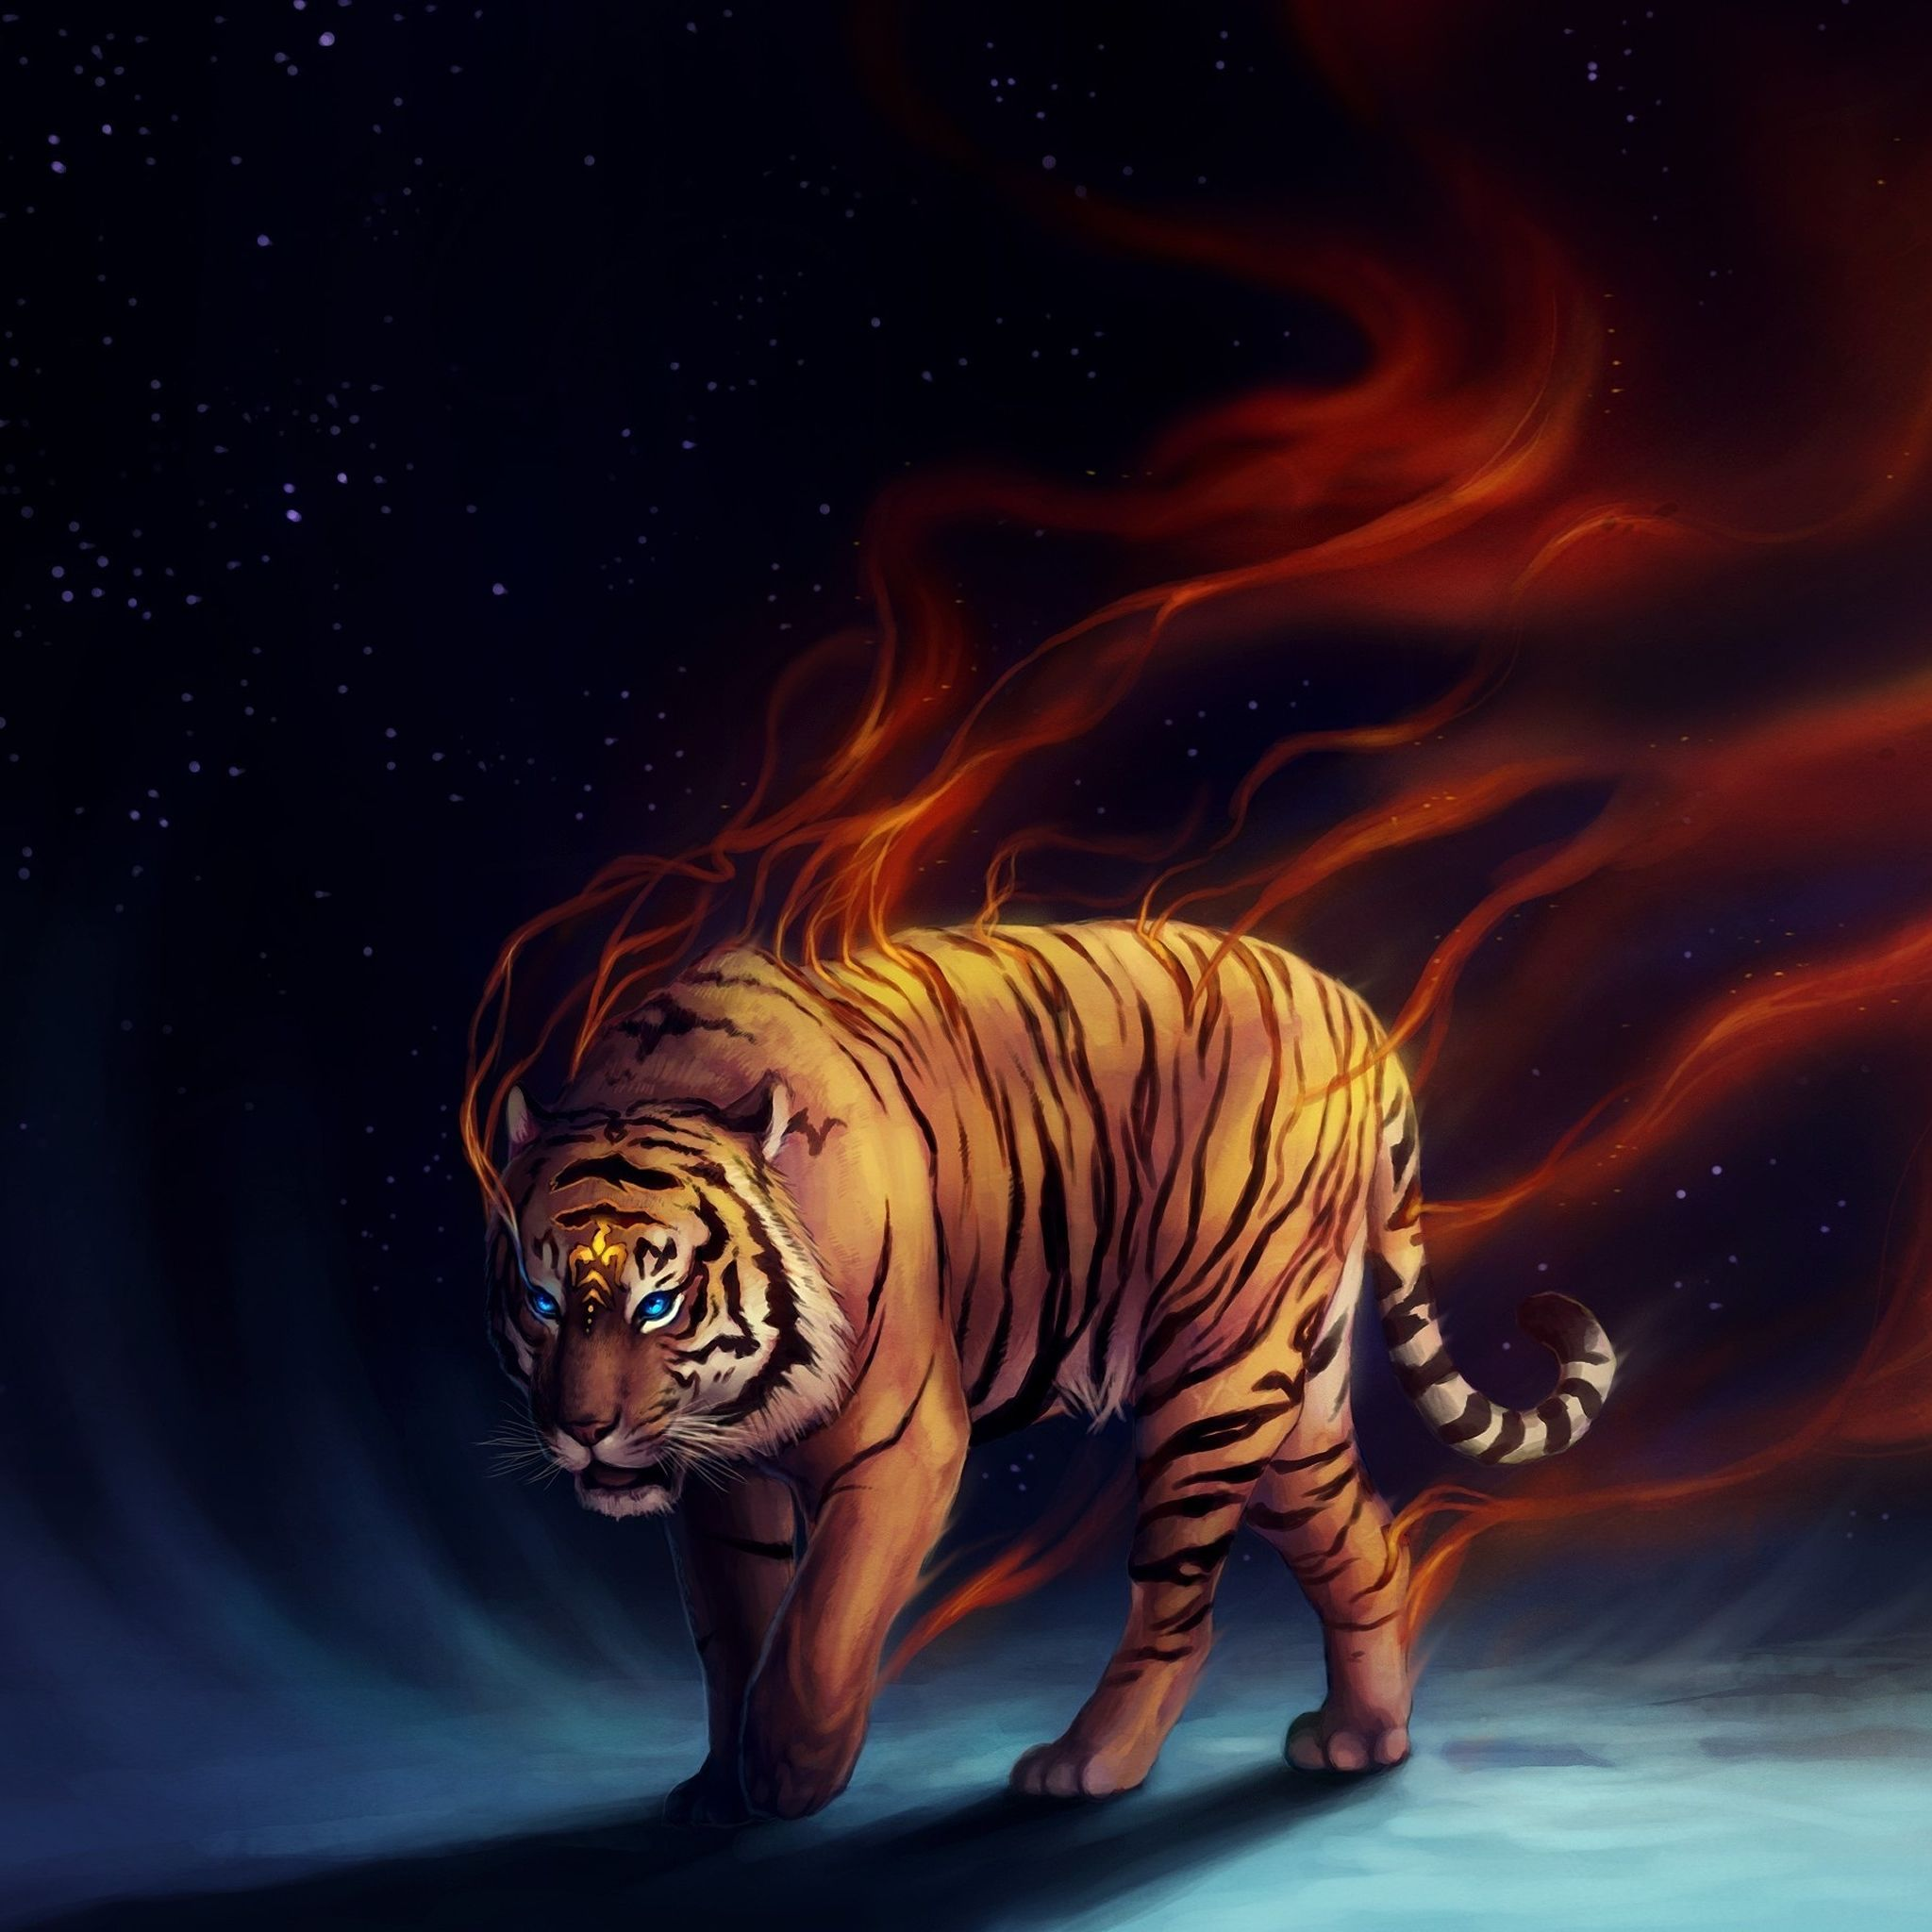 Aesthetic Tiger Wallpapers Top Free Aesthetic Tiger Backgrounds Wallpaperaccess